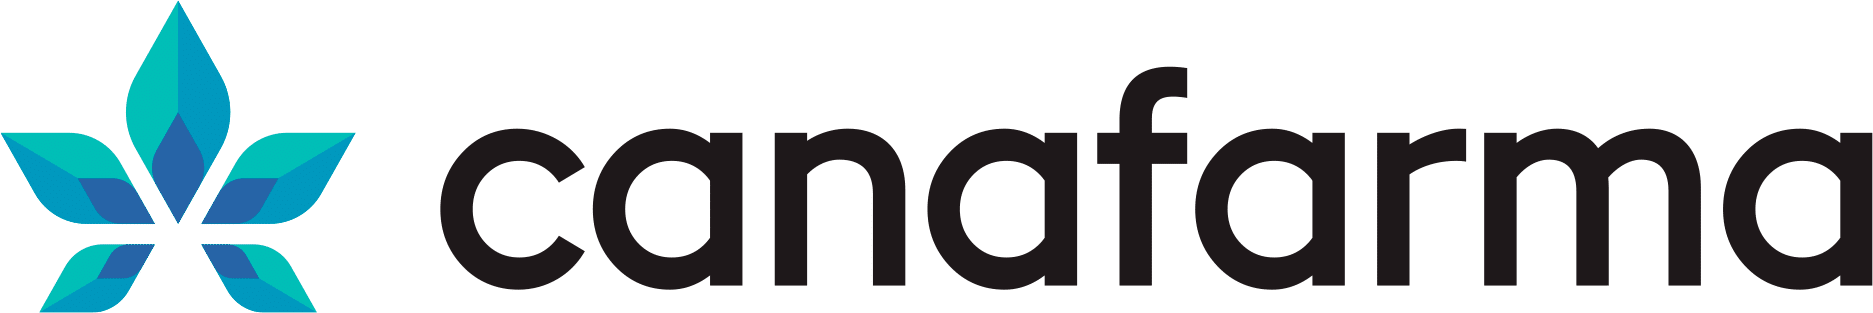 CanaFarma Hemp Products Corp. Announces Frank Barone as Its Chief Operating Officer